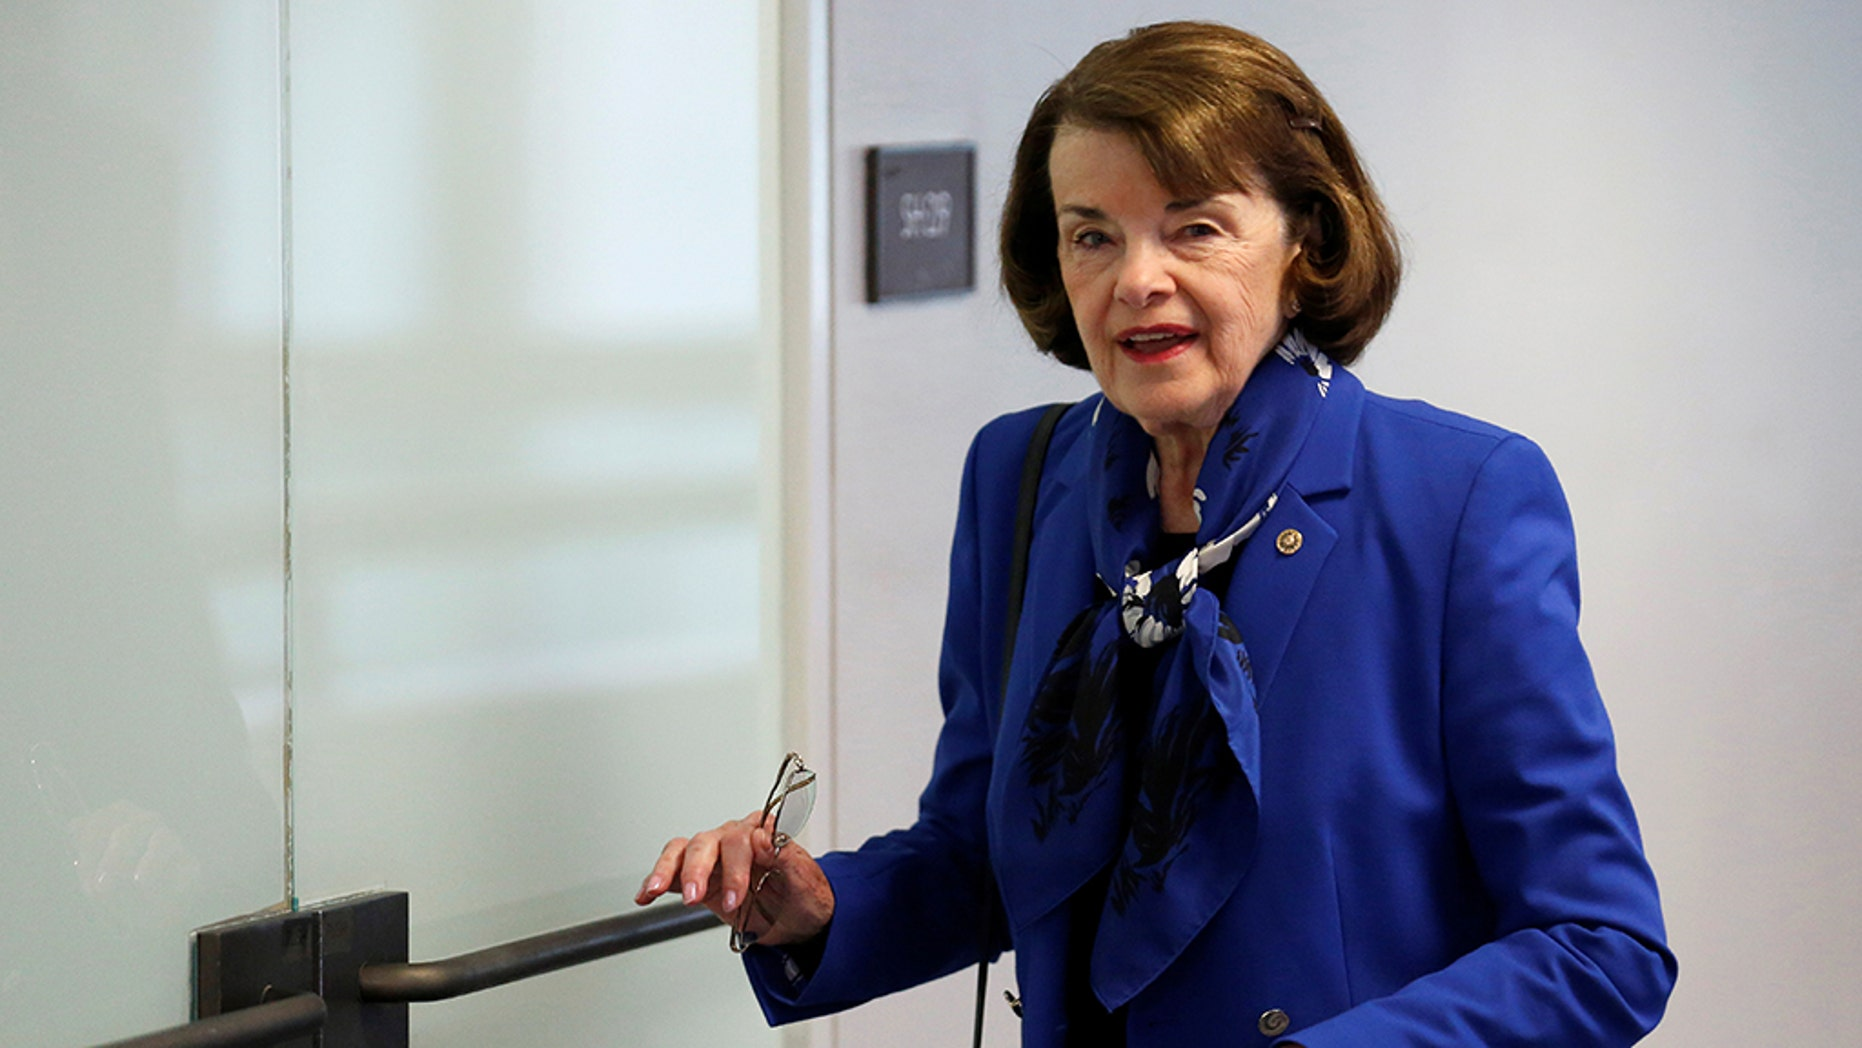 """United States Senator Diane Fainestein (D-Calif.) Arriving at a hearing by the Senate Intelligence Committee on the Capitol Hill in Washington, DC, May 1<div class=""""e3lan e3lan-in-post1""""><script async src=""""//pagead2.googlesyndication.com/pagead/js/adsbygoogle.js""""></script> <!-- Text_Image --> <ins class=""""adsbygoogle""""      style=""""display:block""""      data-ad-client=""""ca-pub-6192903739091894""""      data-ad-slot=""""3136787391""""      data-ad-format=""""auto""""      data-full-width-responsive=""""true""""></ins> <script> (adsbygoogle = window.adsbygoogle 